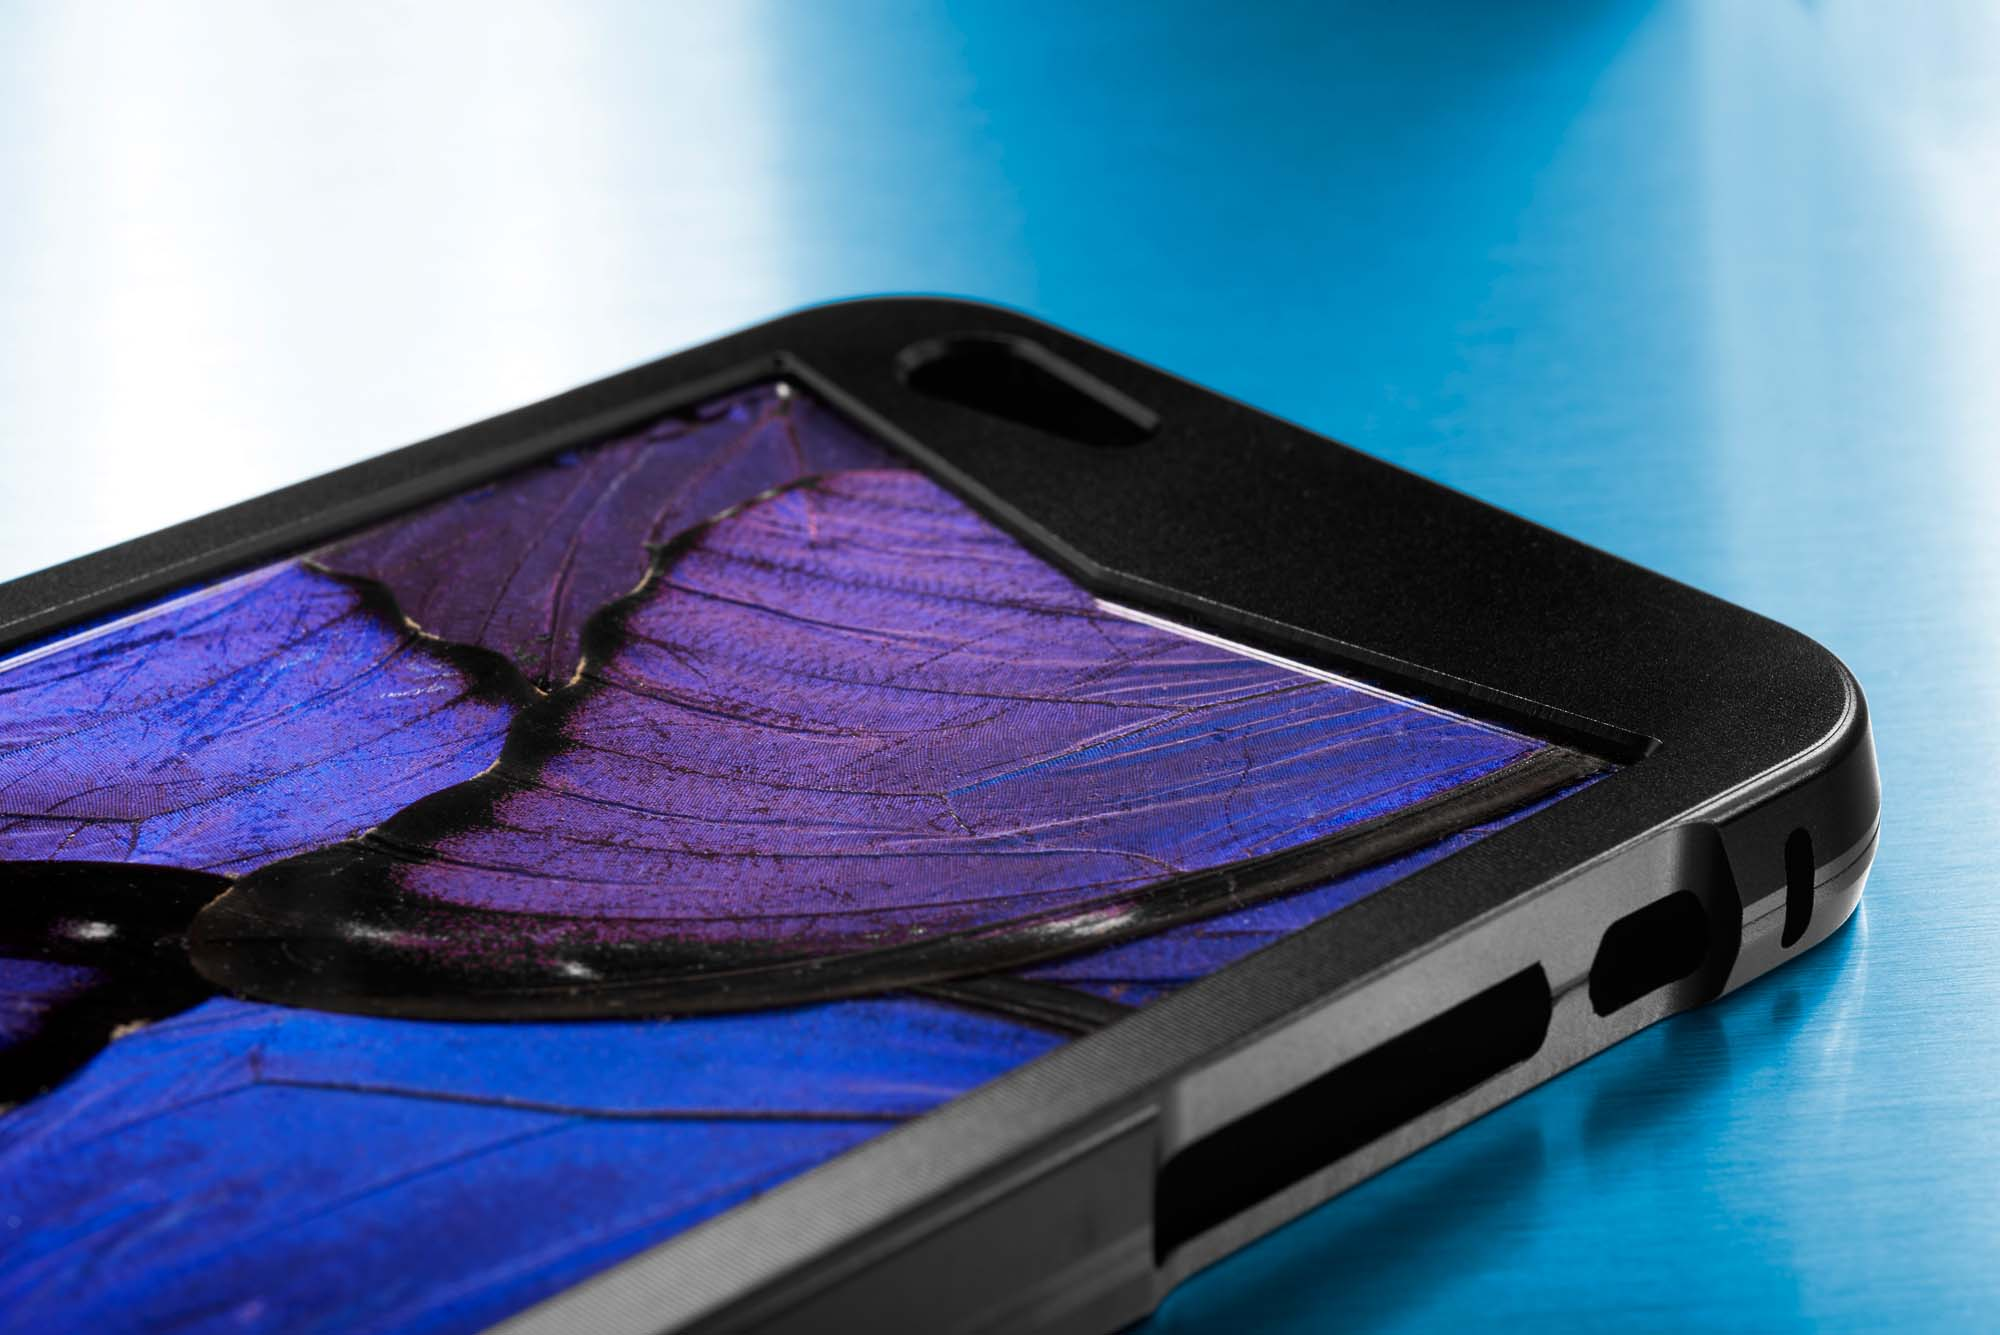 The one of a kind KHAMAMA BLUE 1874 iPhone case with real blue morpho butterfly wing art embodies the beauty of nature